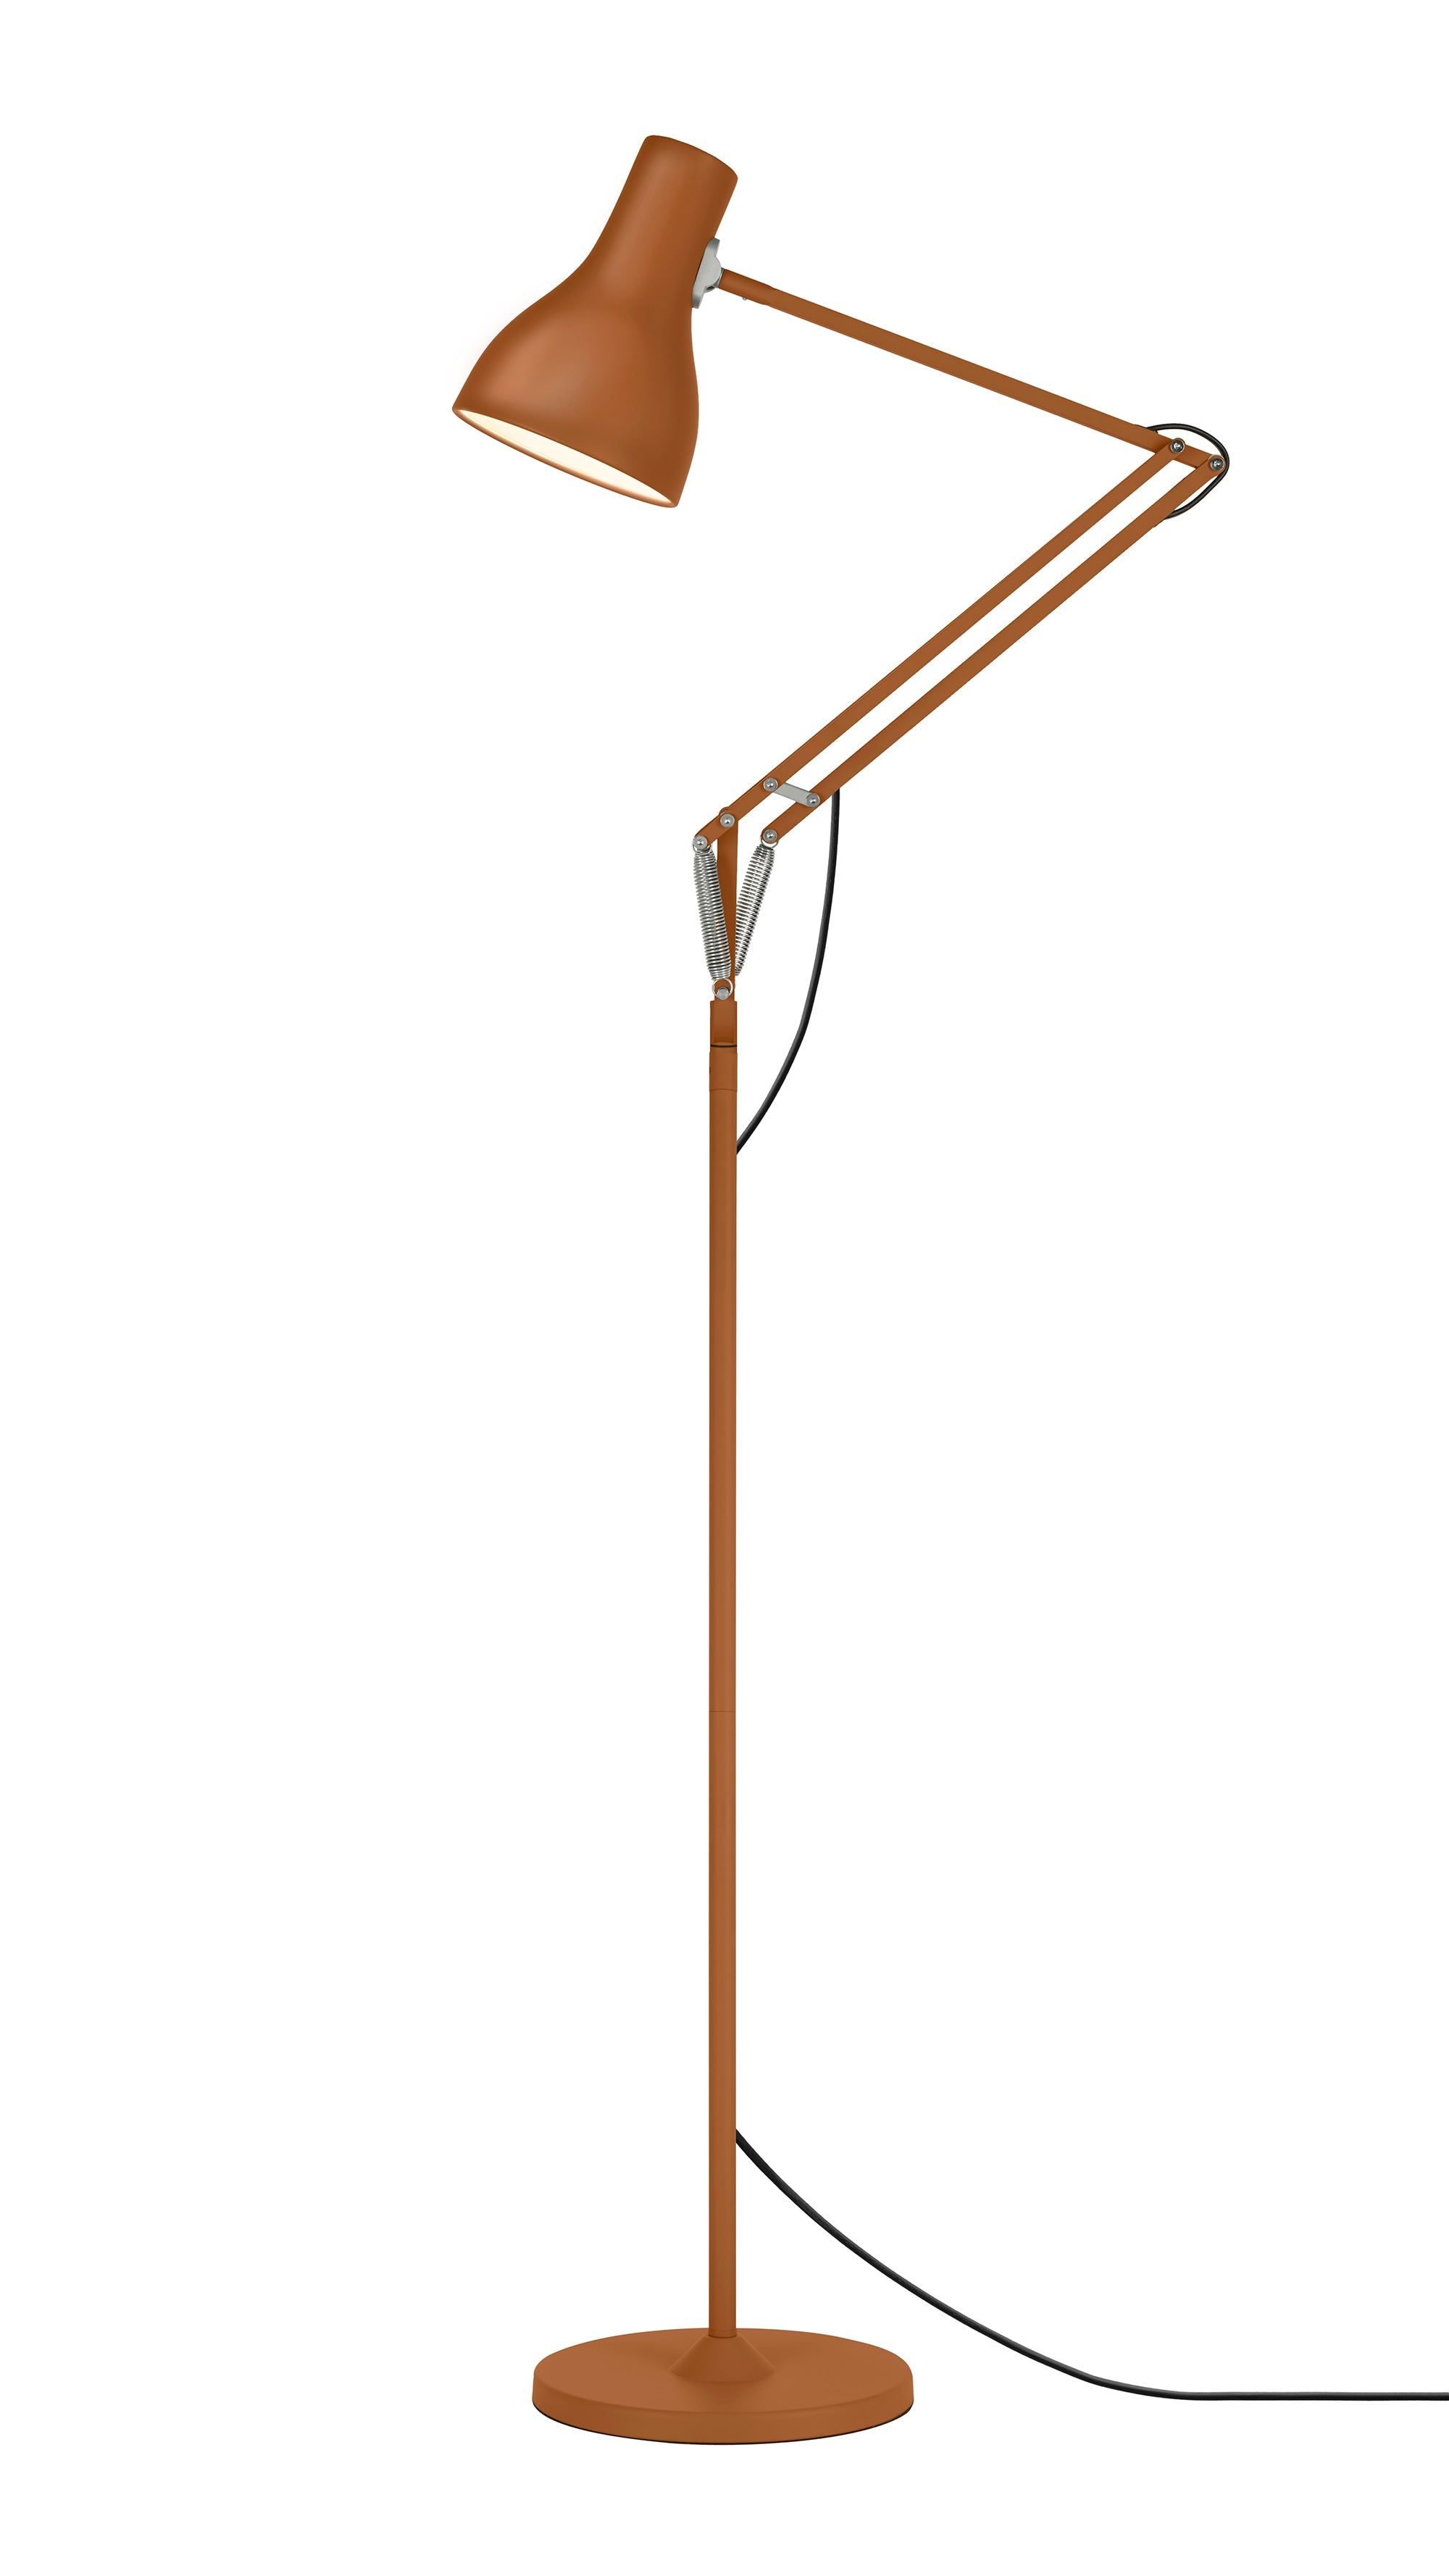 Anglepoise Type 75 Floor Lamp Margaret Howell Edition Sienna